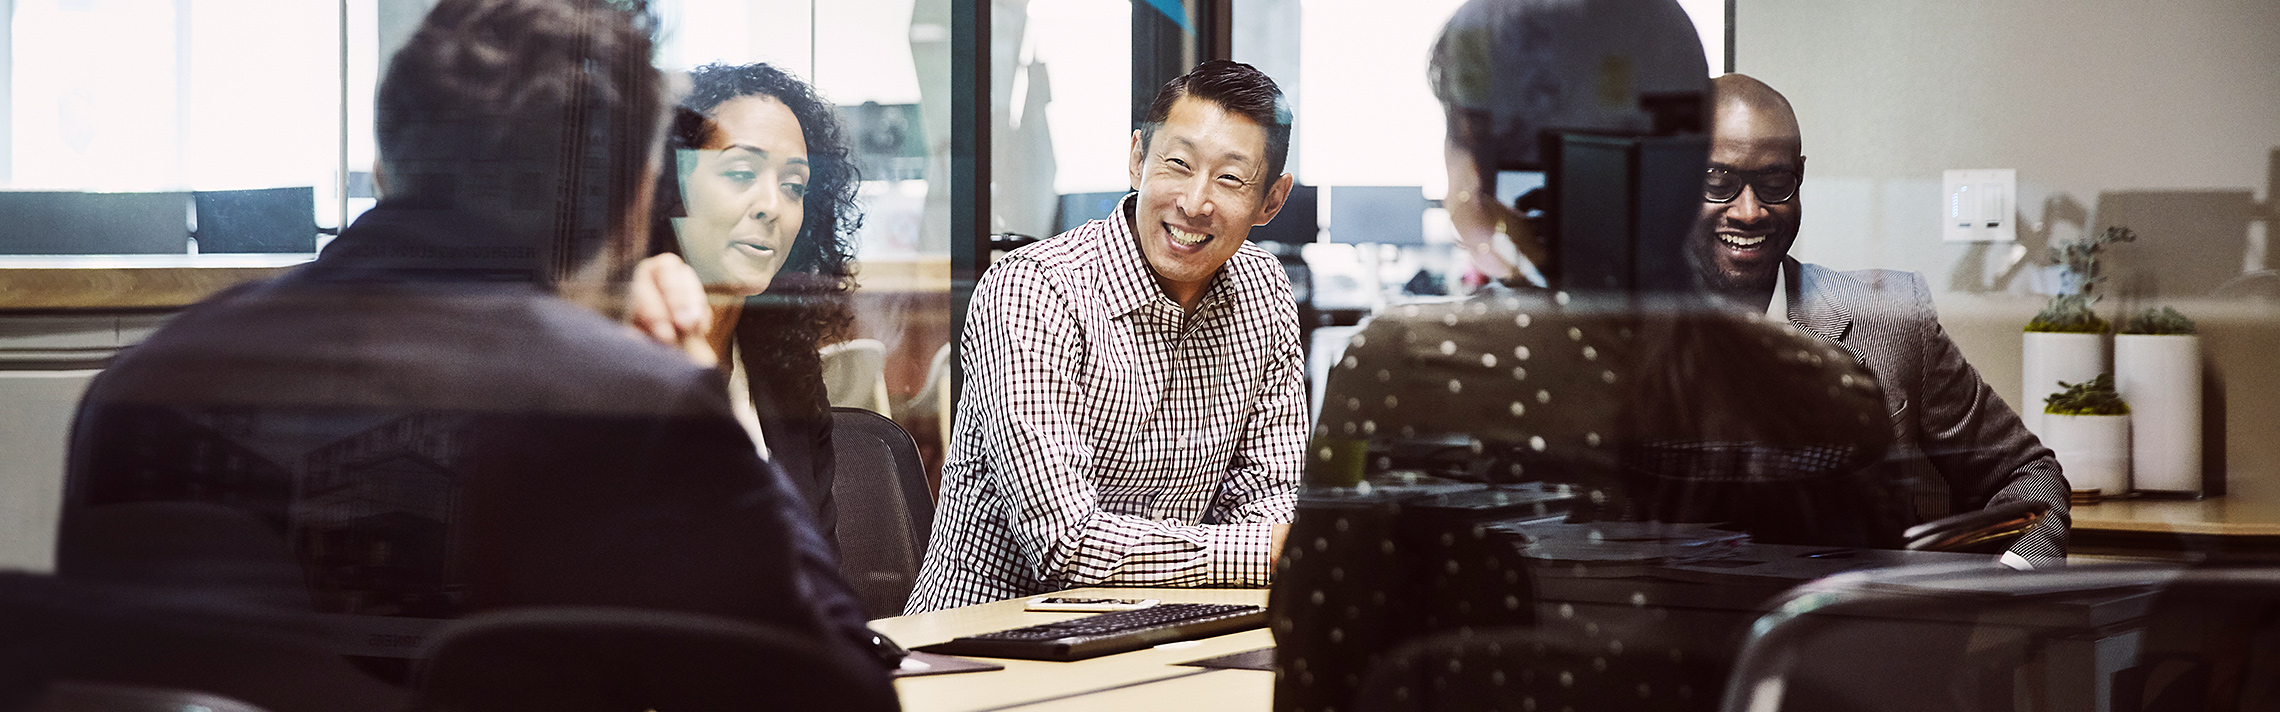 Smiling businessman leading client meeting in office conference room.